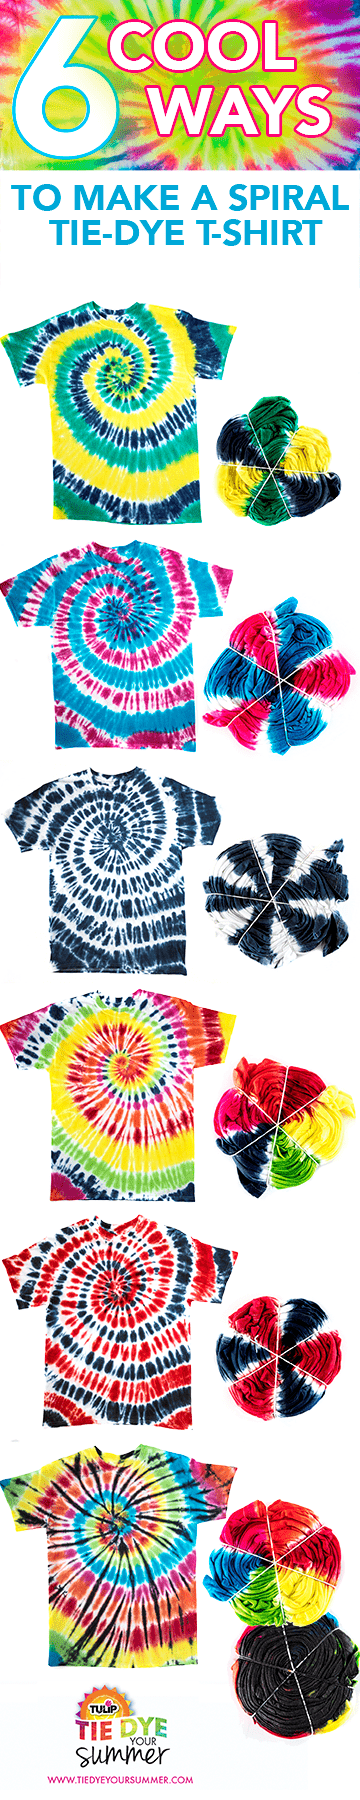 Spiral Tie Dye Technique Choose Your Favorite Color Combos For Easy